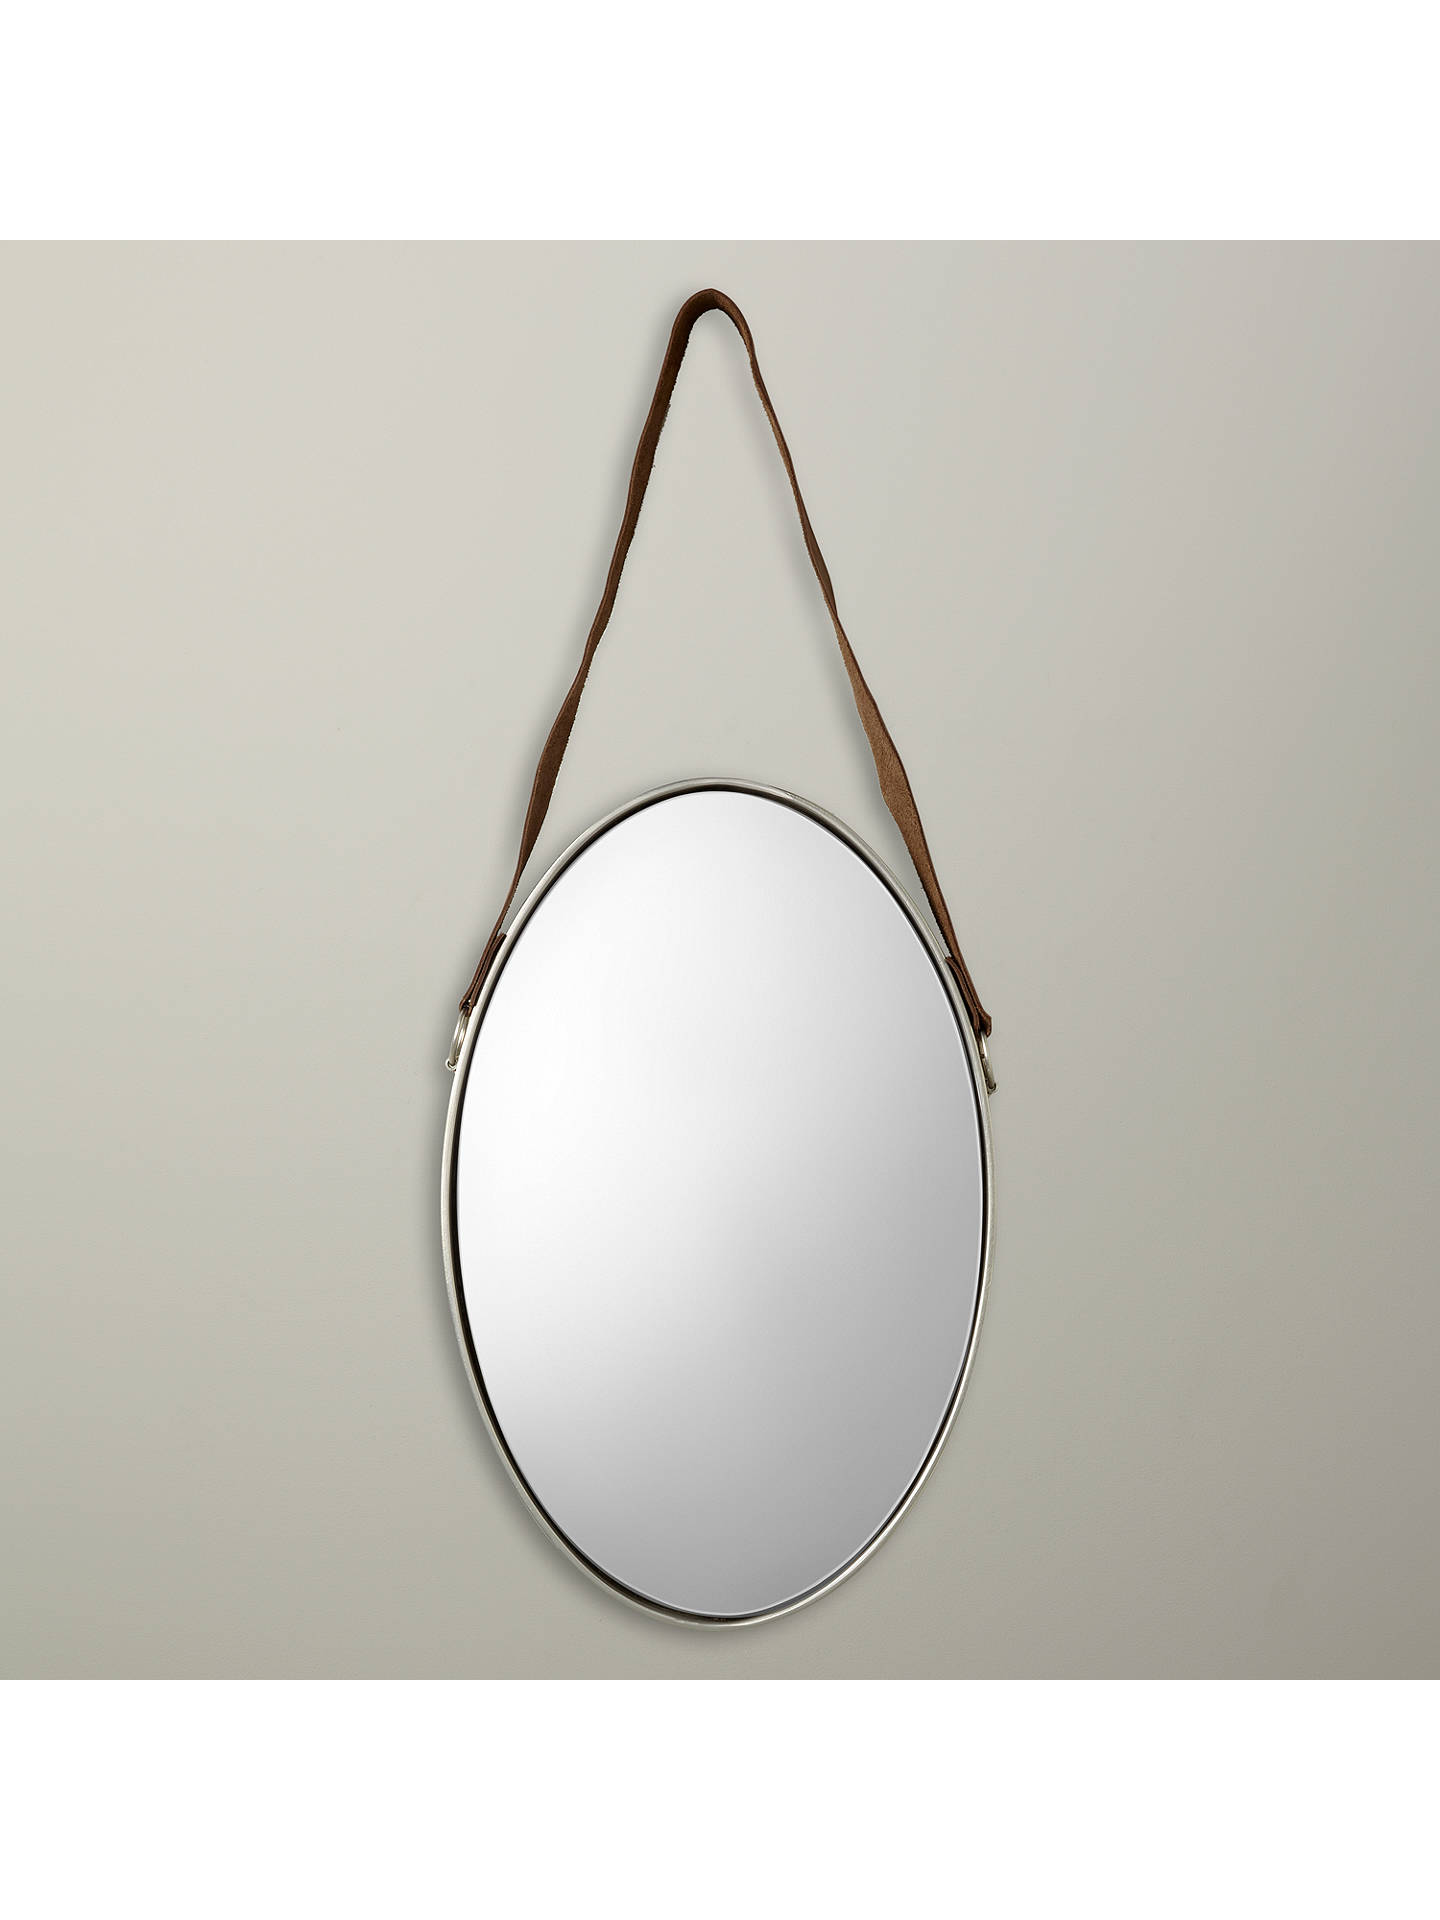 BuyJohn Lewis & Partners Ronda Oval Hanging Mirror with Strap, 48 x 31cm, Nickel Online at johnlewis.com